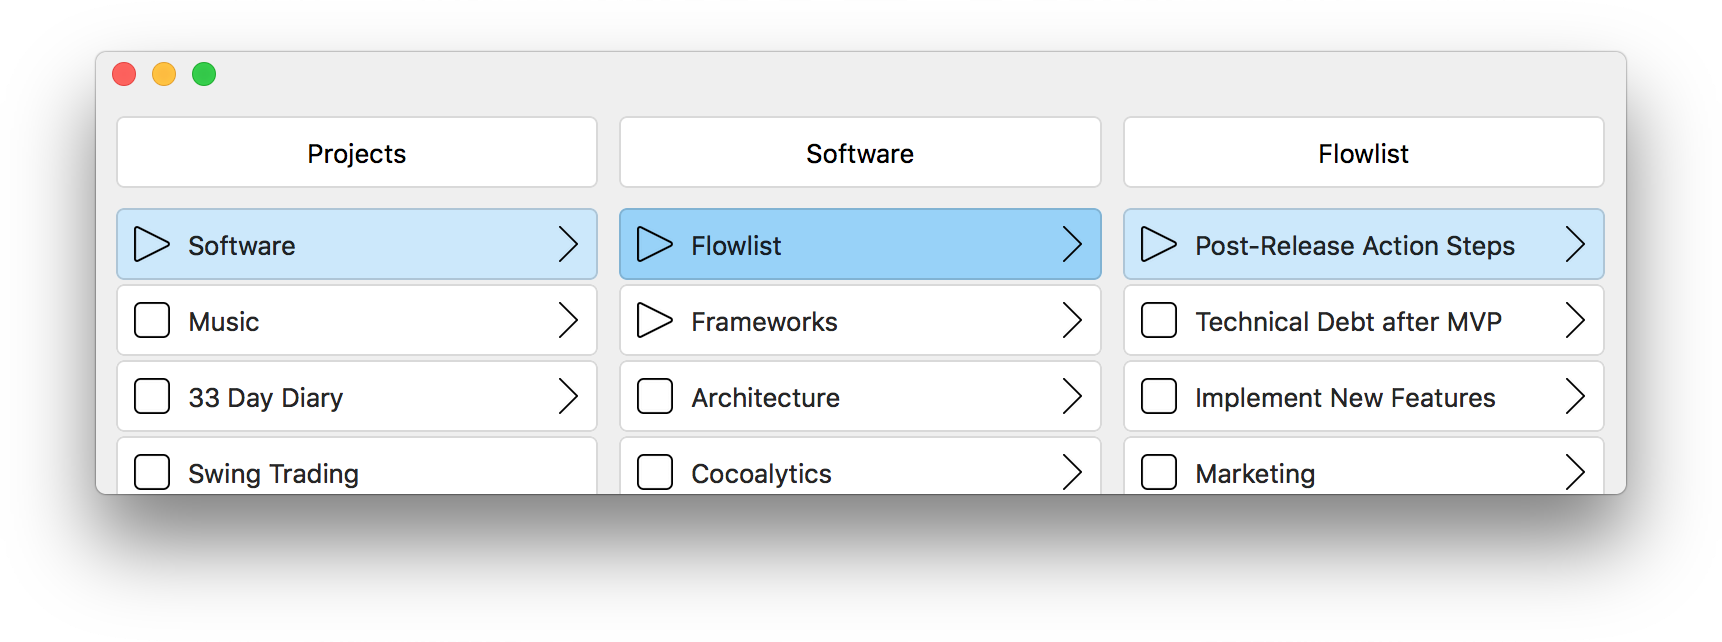 Hierarchical Items Can Express Many Levels of Detail. task management, task, app, flow, todo list, flowlist, task list, omnifocus, wunderlist, todoist, focus, trello, agenda, agile, kanban, productivity, apple, mac, macos, ios, osx, self management, project management, organizer, getting things done, getting shit done, note taking, brainstorming, creative writing, hierarchical data